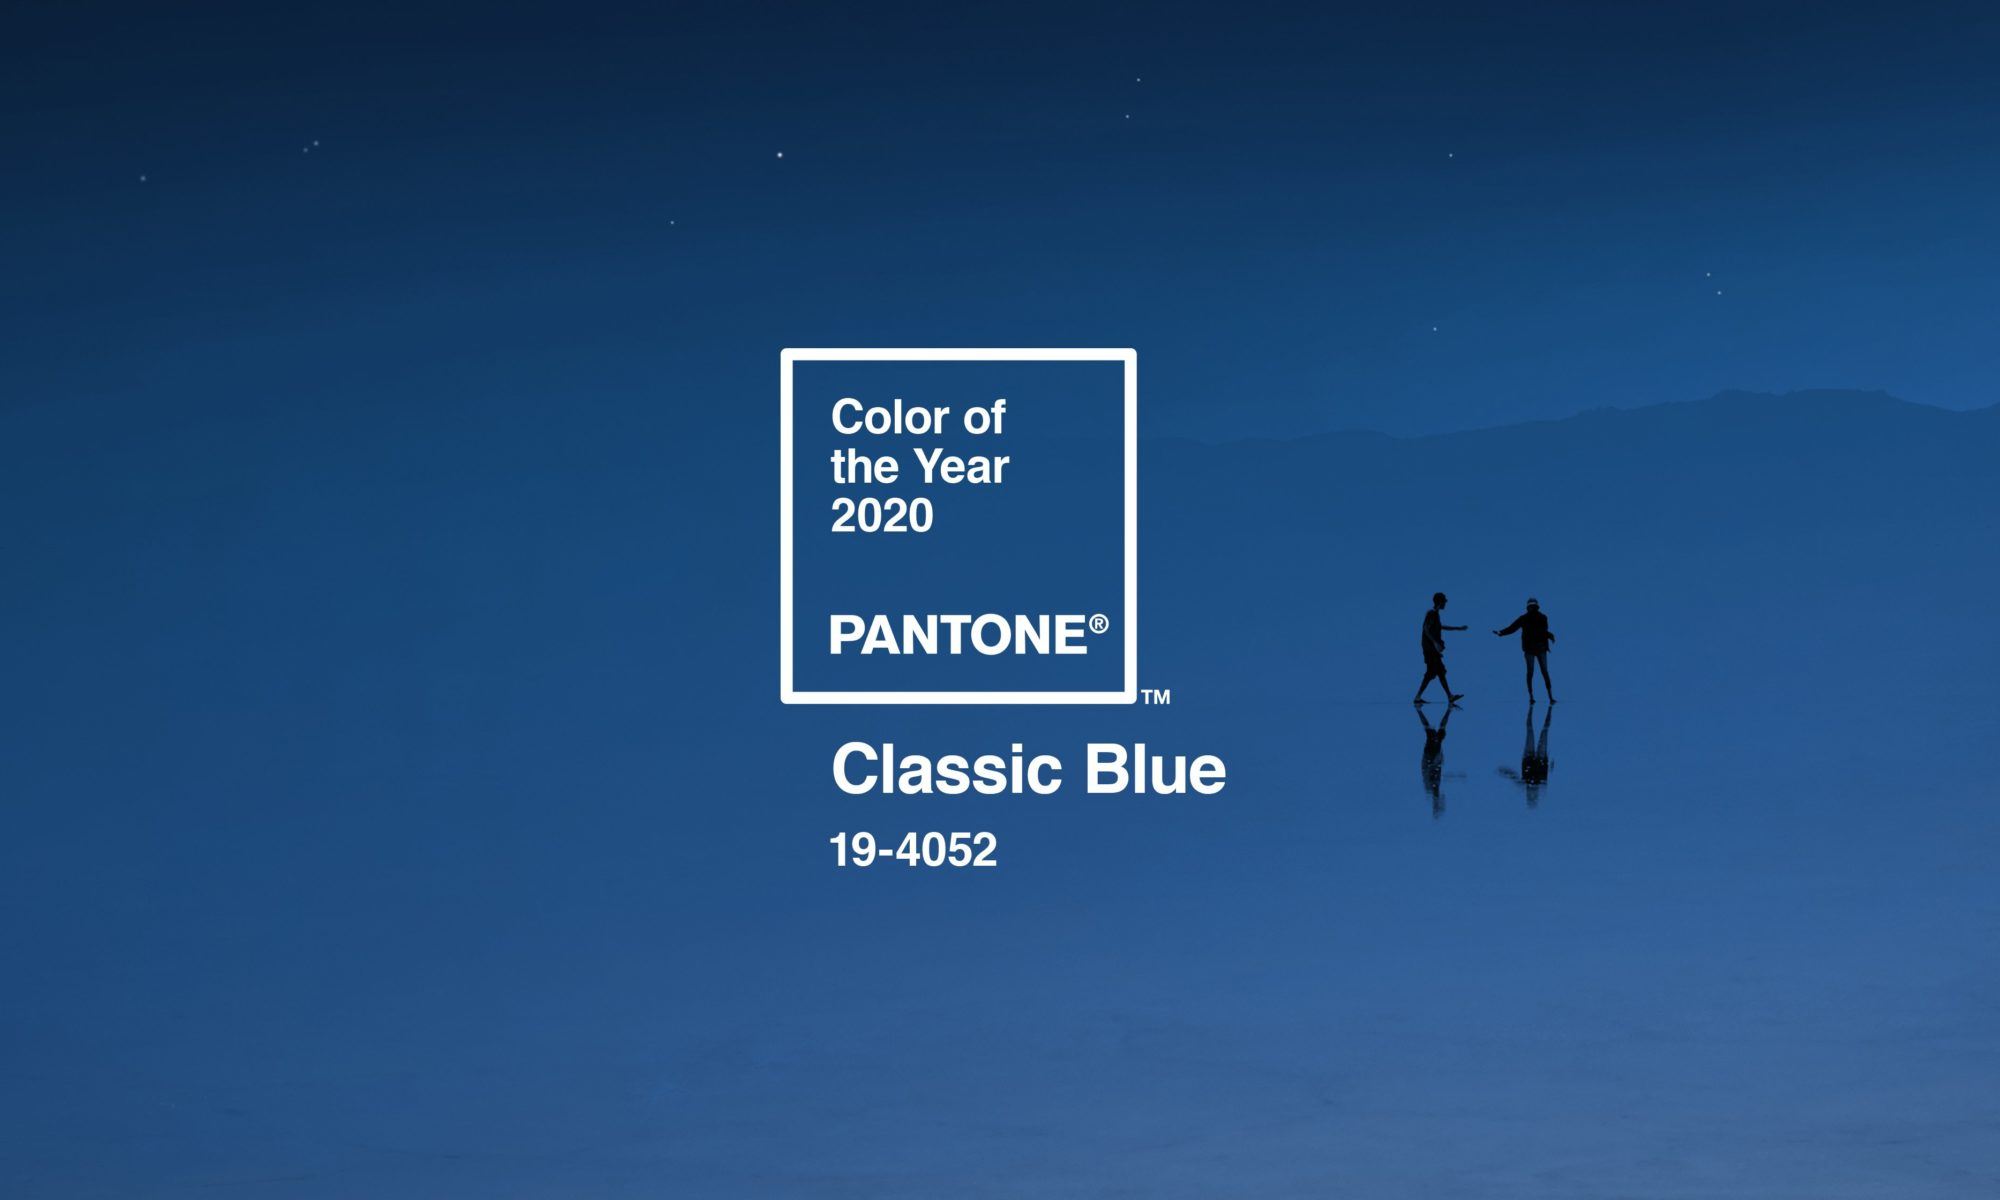 pantone couleur de l'année color of the year 2020